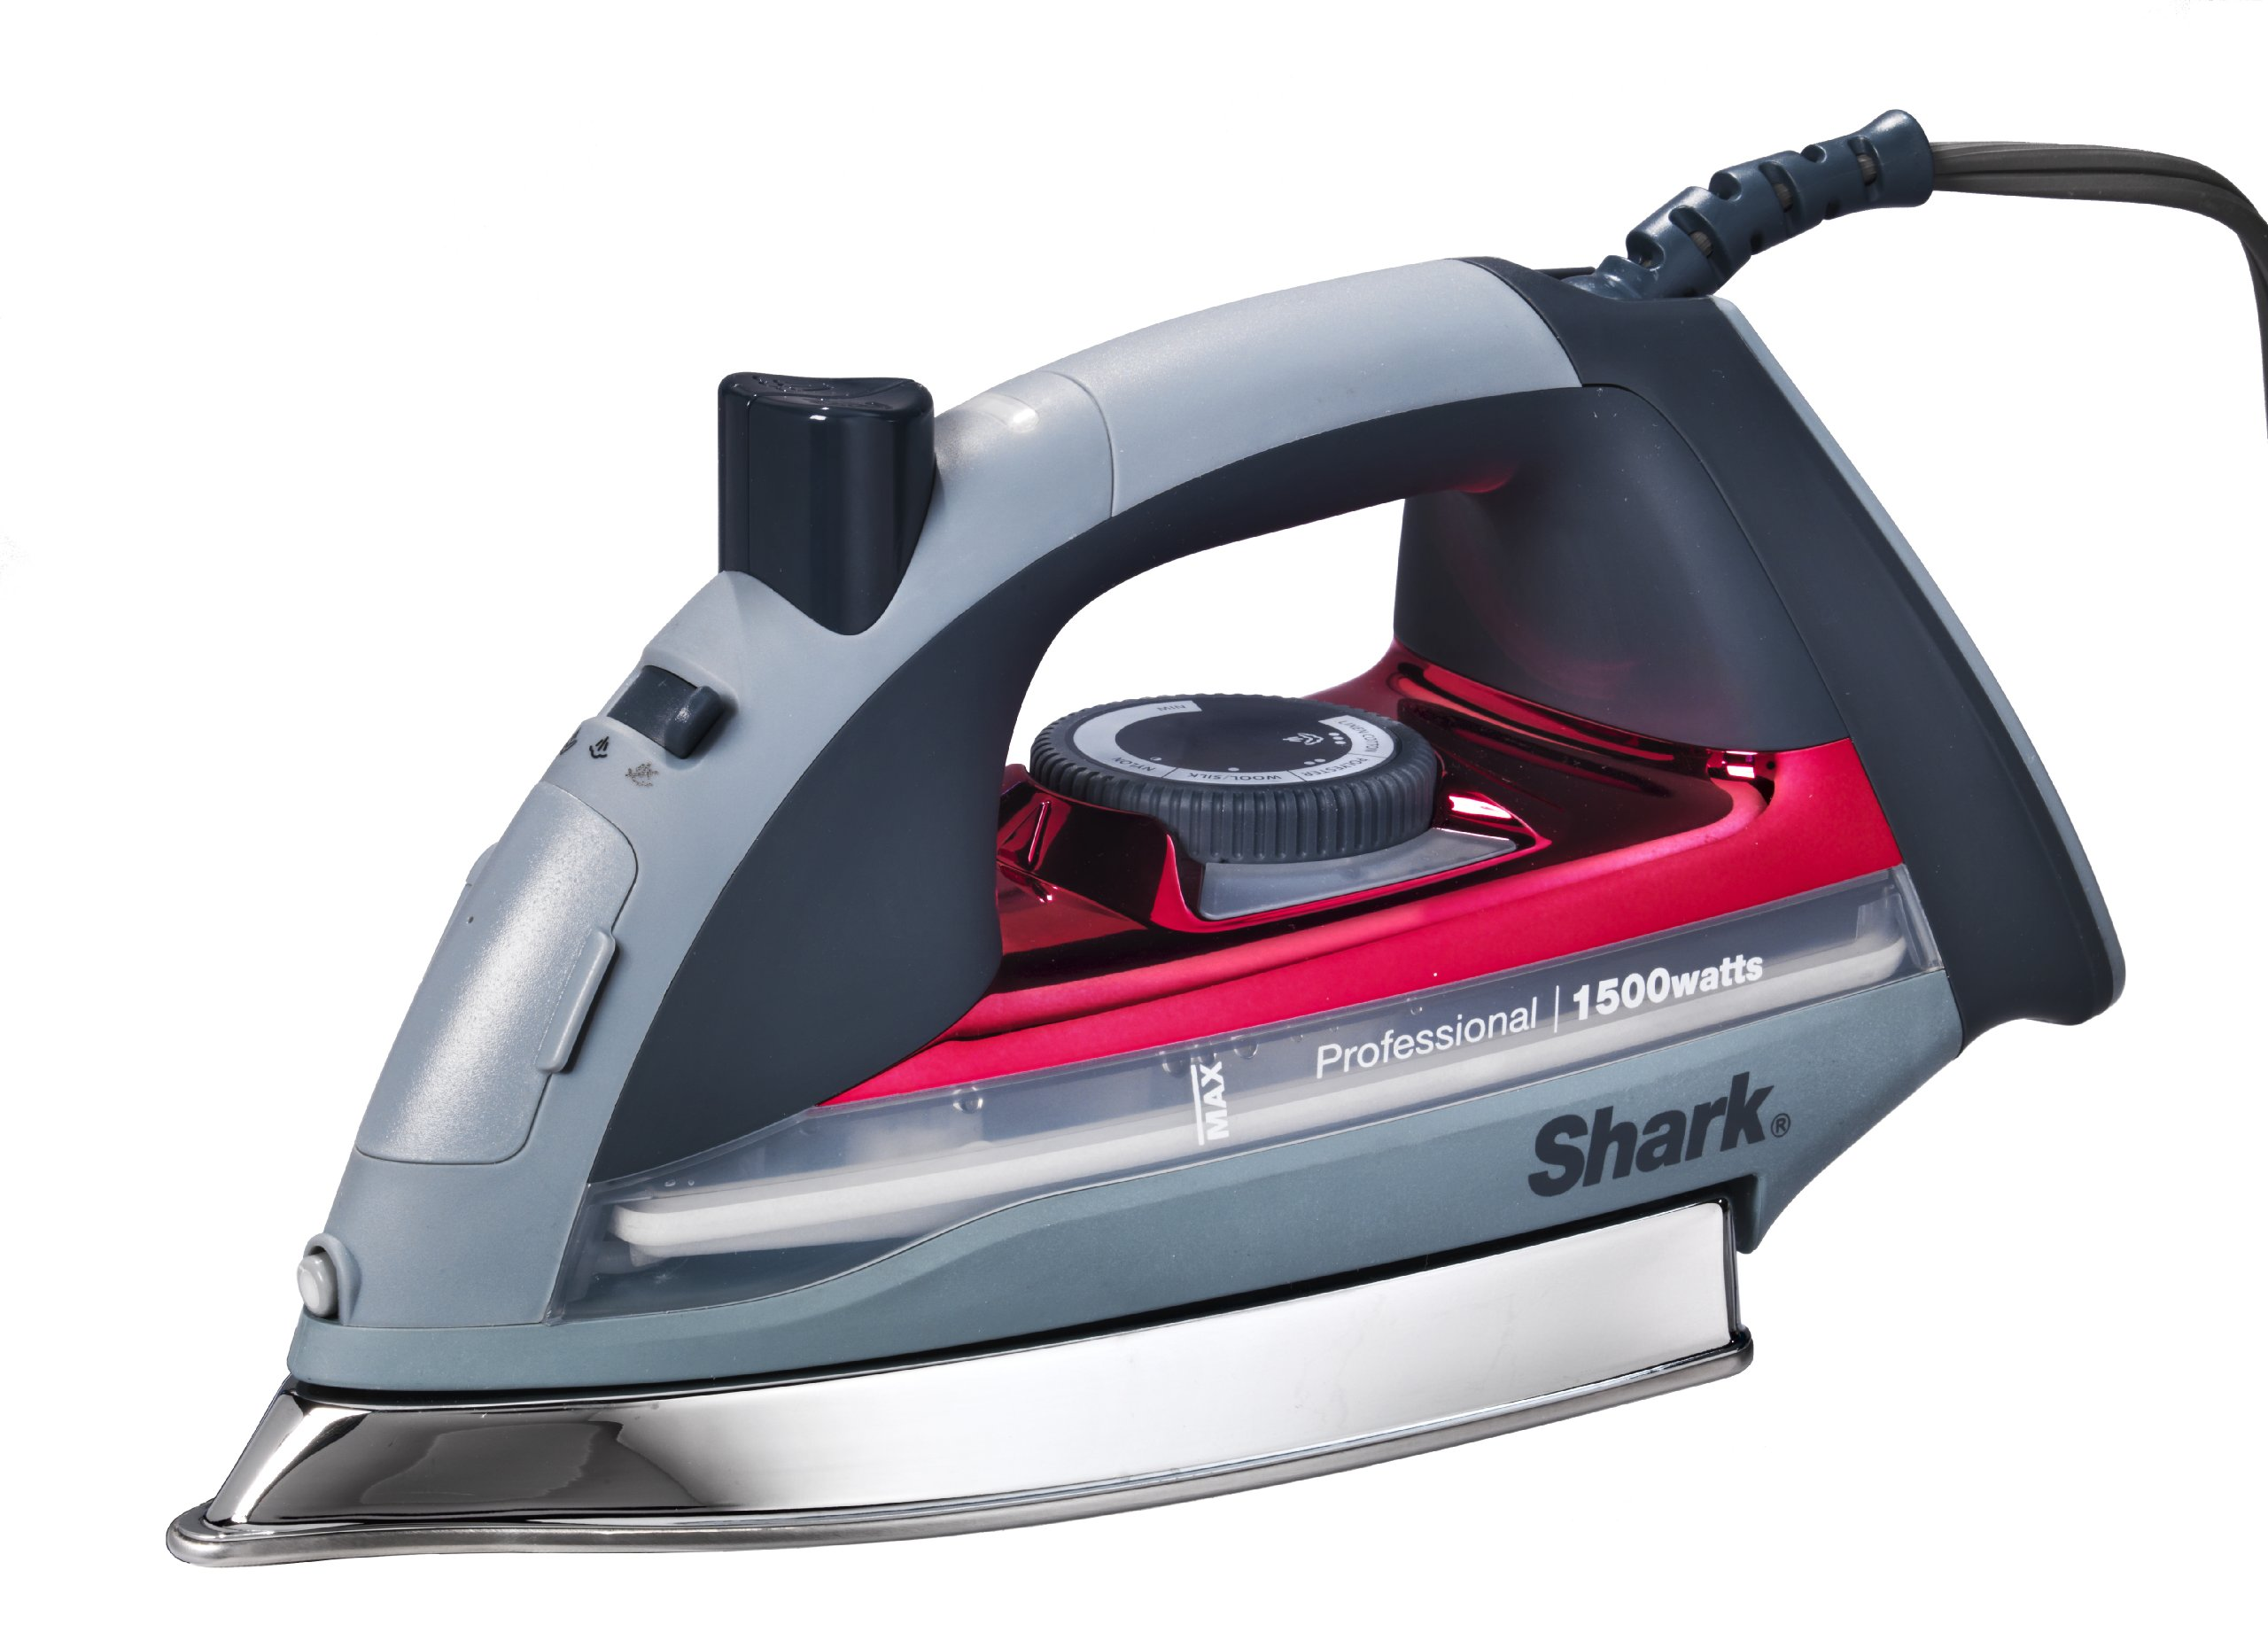 Shark Professional Steam Iron, Garment Steamer with Auto-Shut Off and Stainless Steel Soleplate, 1500 Watts (GI305), Red